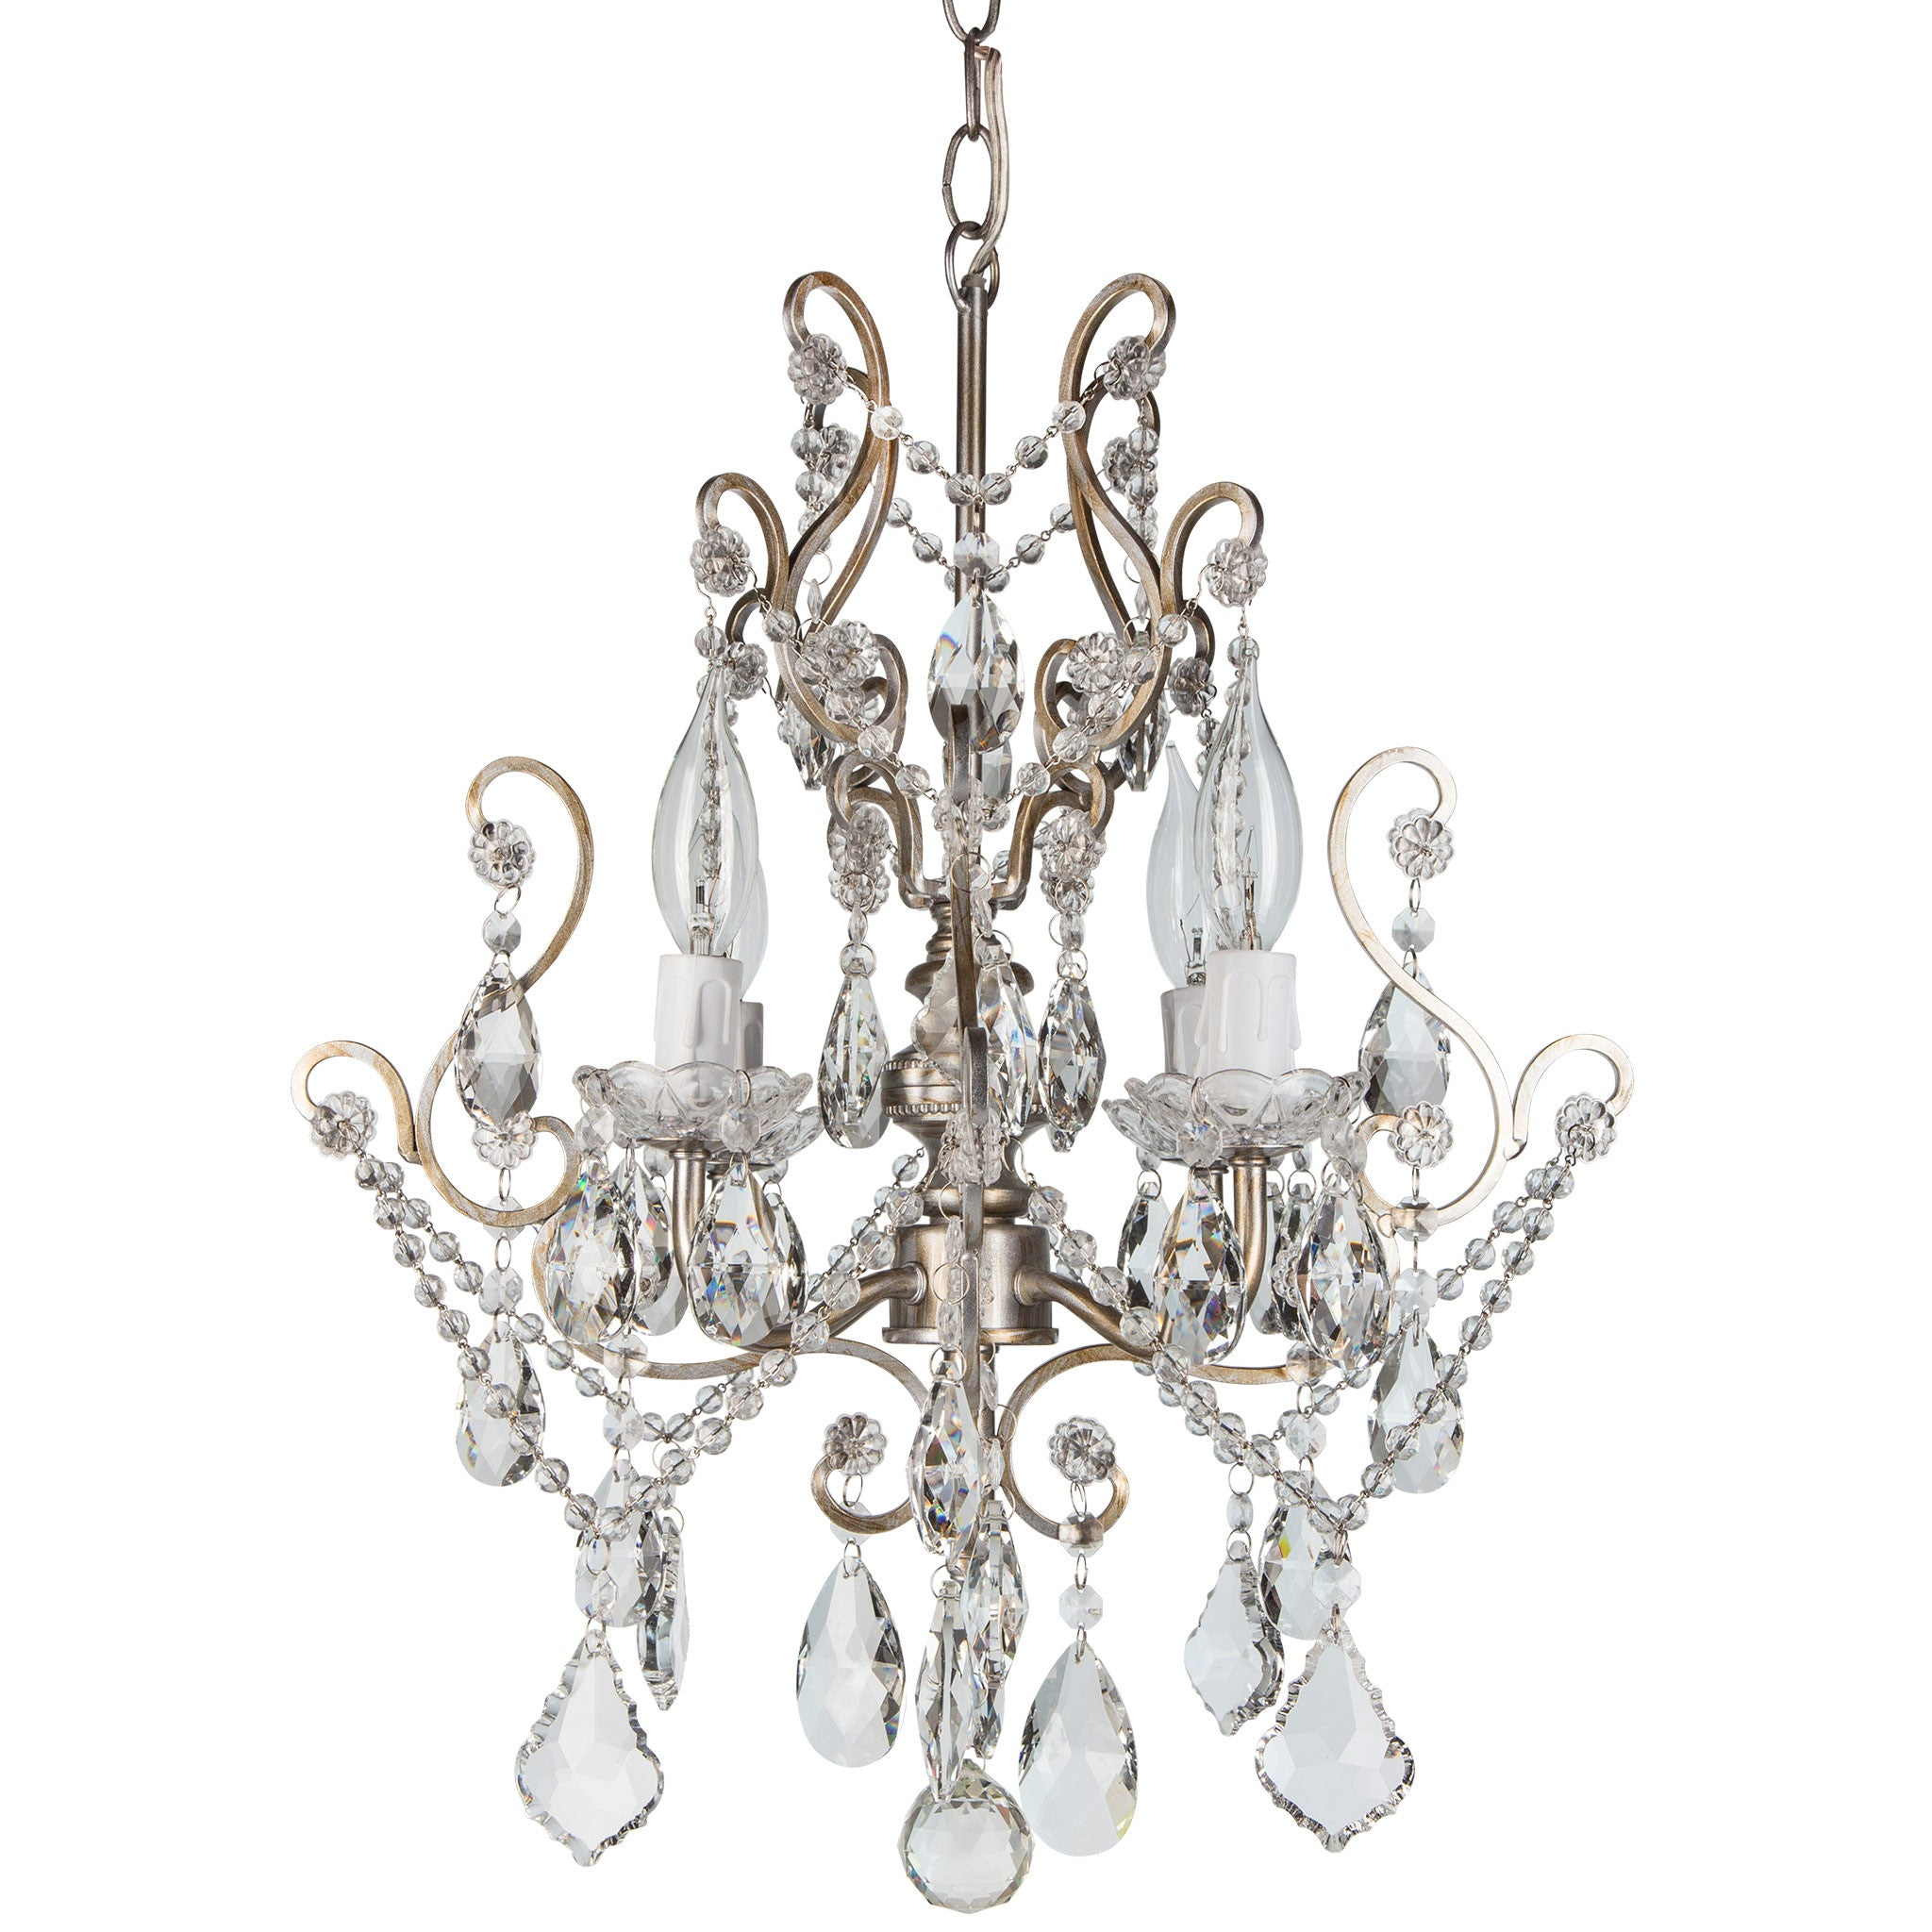 Amalfi Decor 4 Light Vintage Crystal Plug-In Chandelier (Silver) | Wrought Iron Frame with Glass Crystals